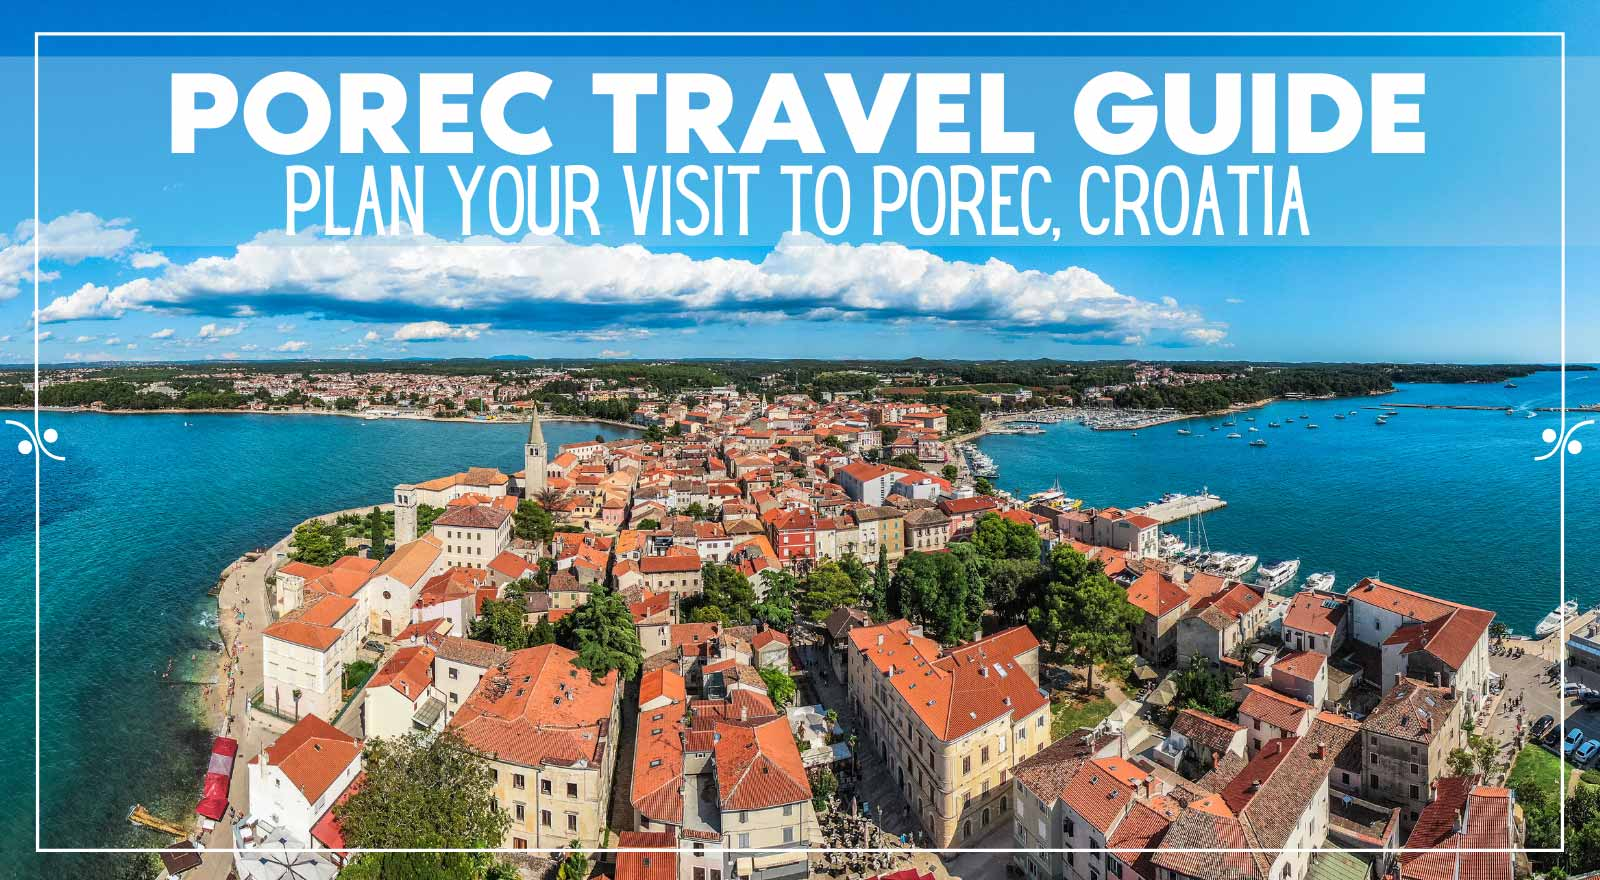 Porec Travel Guide: Plan Your Visit To Porec, Croatia, Illustration